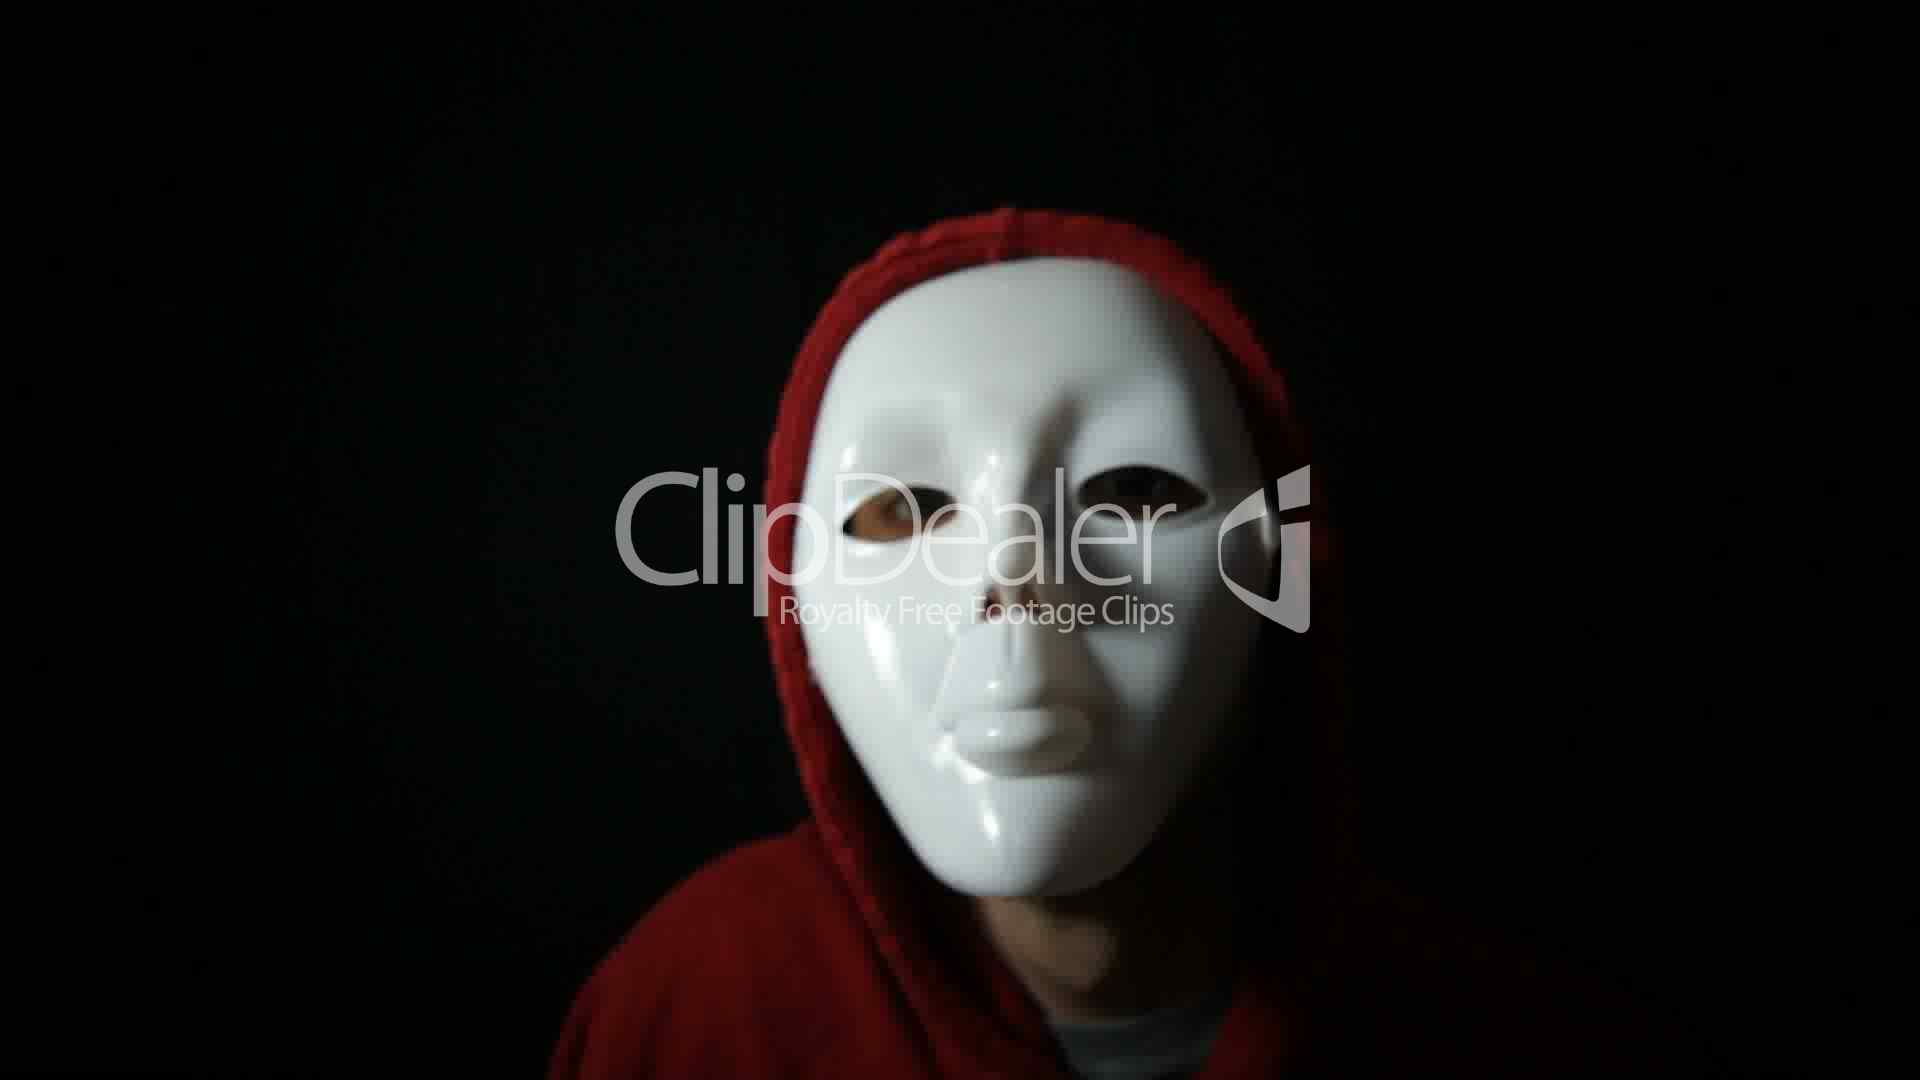 Horror face: Royalty-free video and stock footage